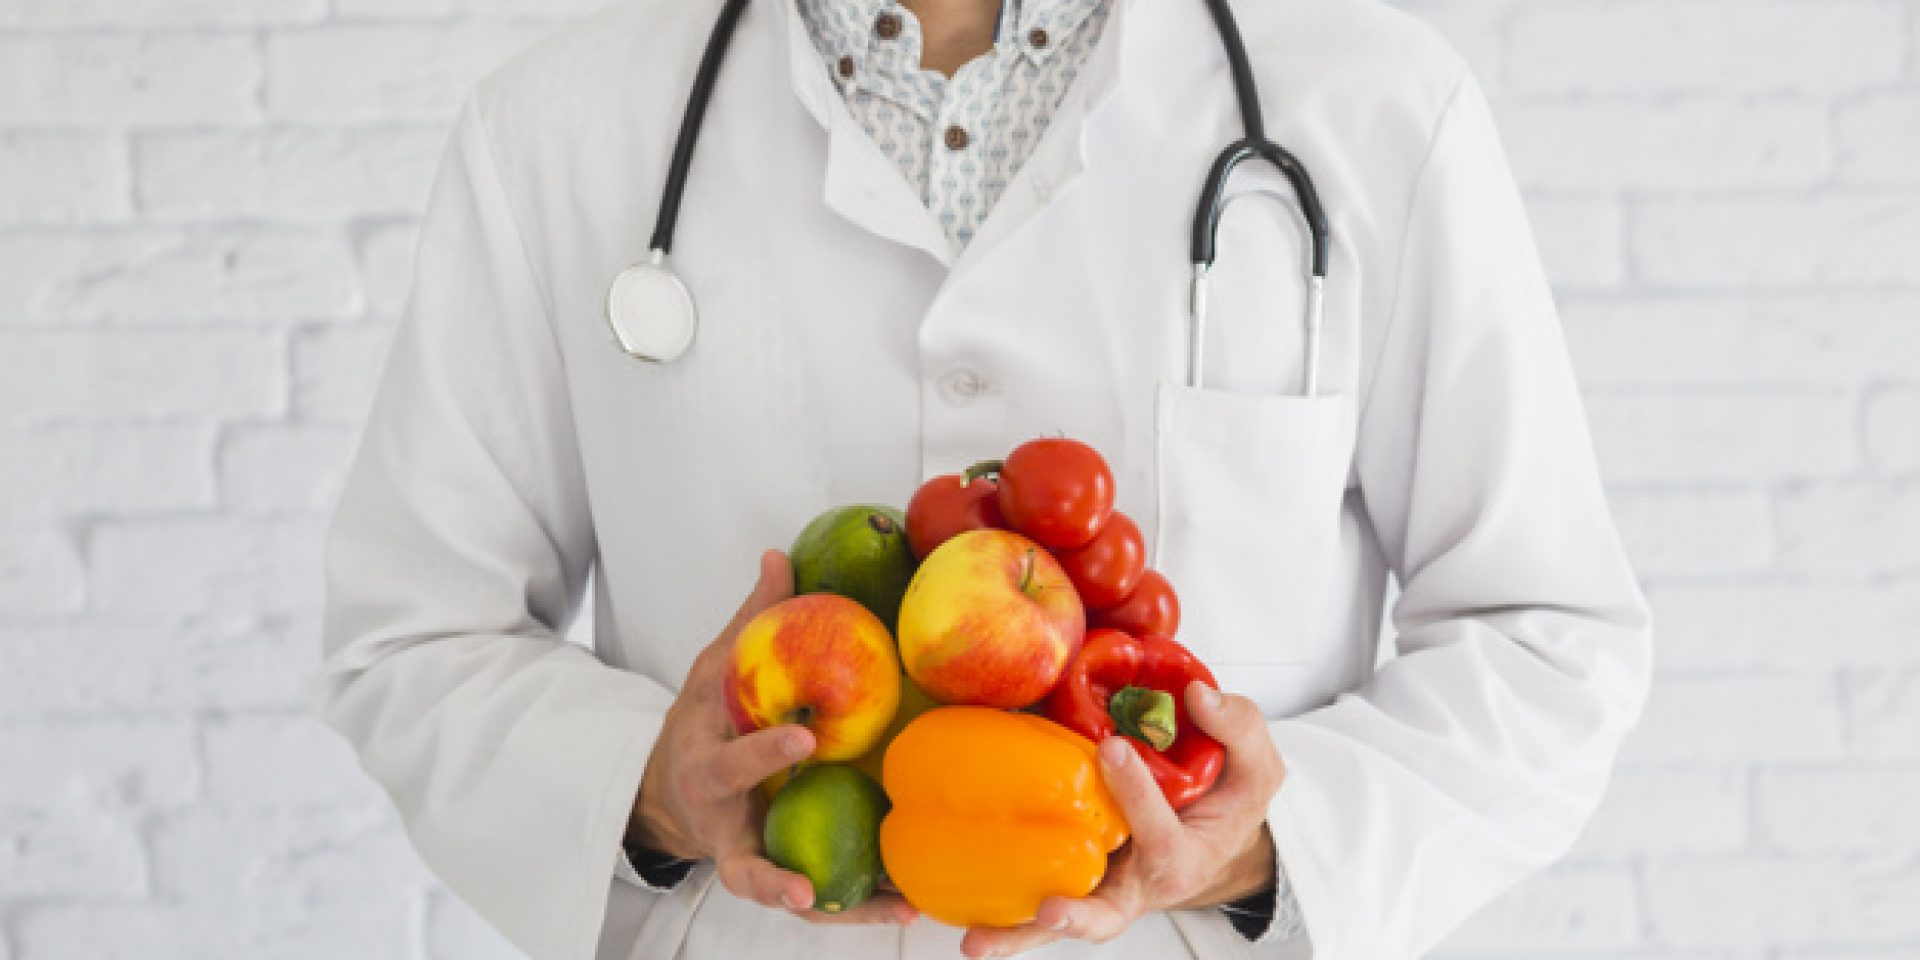 close-up-of-male-doctor-s-hand-holding-fresh-produce-healthy-fruit-and-vegetable_23-2147855415